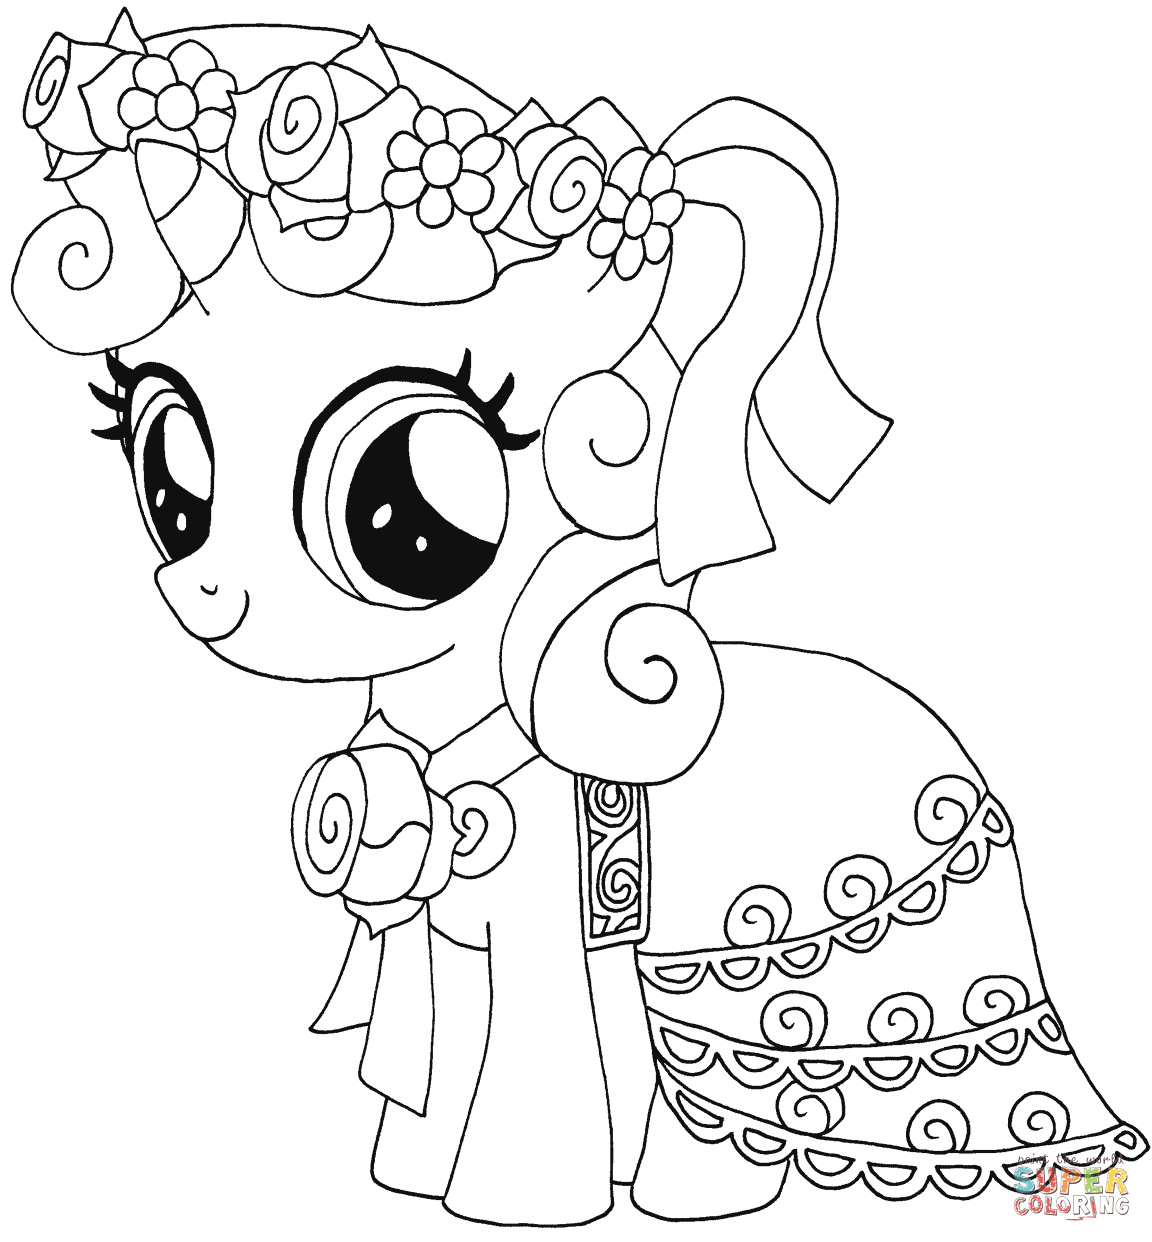 Coloring Pages: my little pony coloring pages | Omalovánky ...